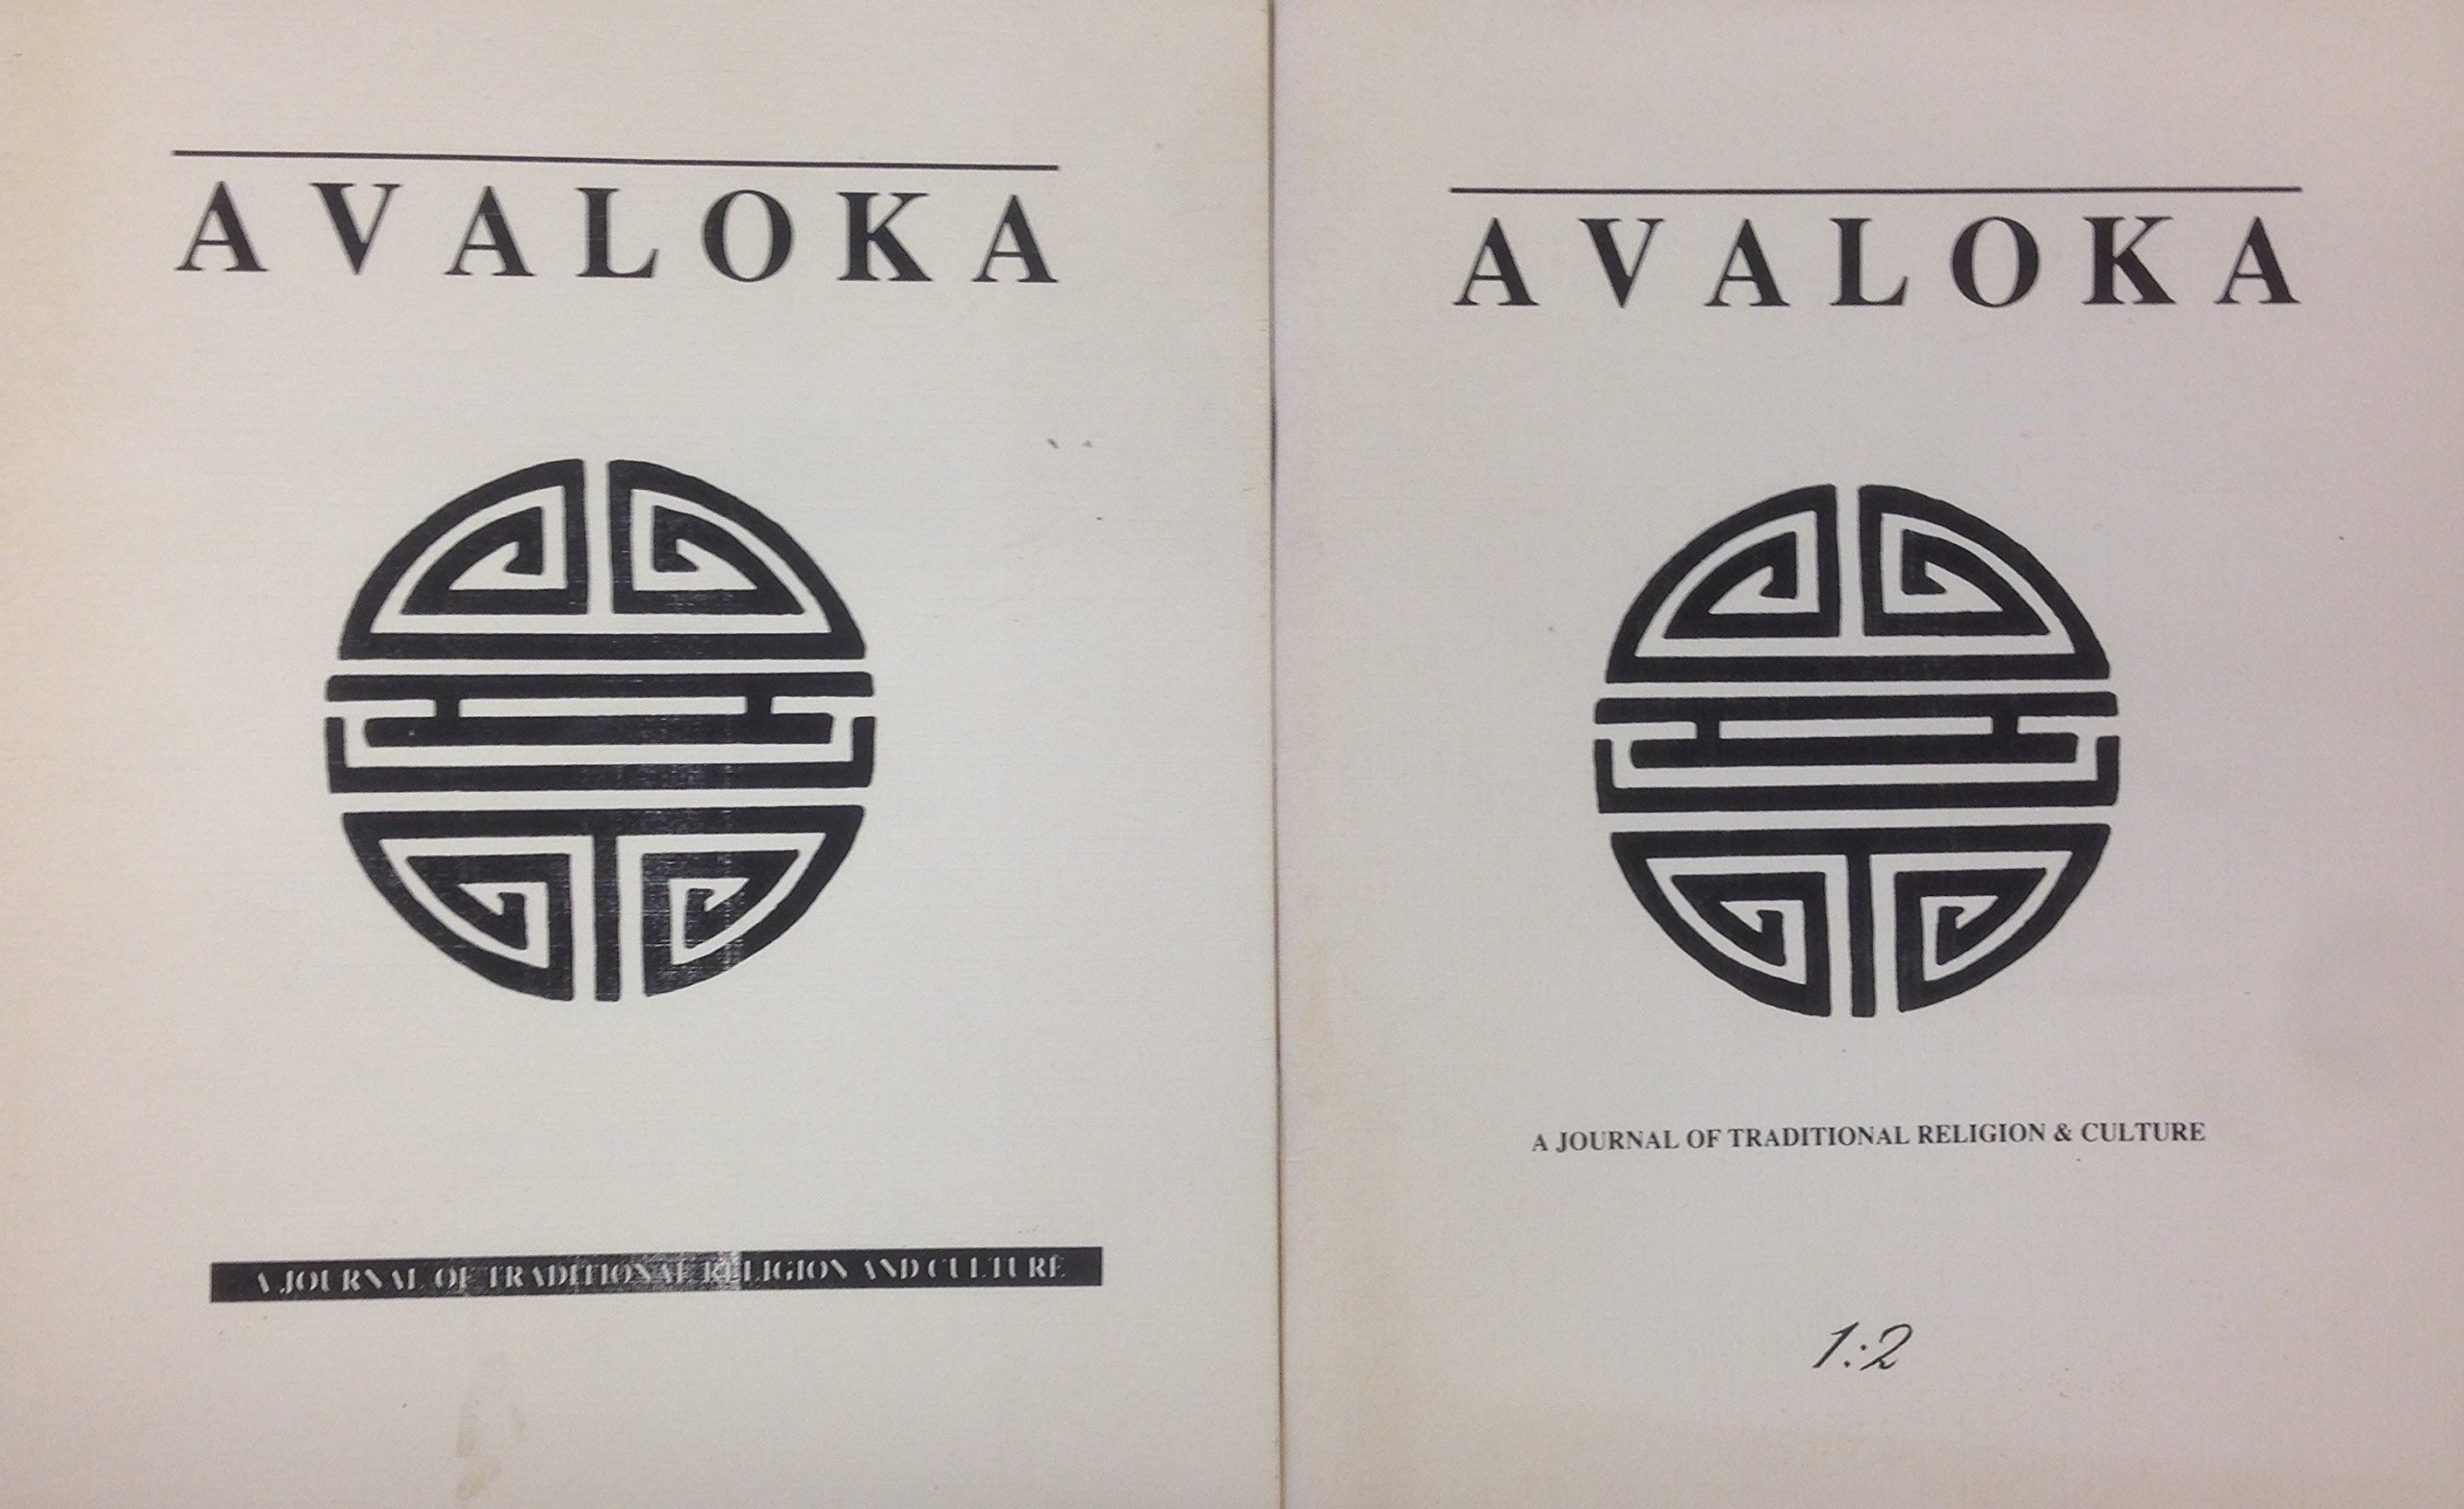 Avaloka ~A Journal of traditional religion and culture~ (Volume V Numbers 1 & 2), Avaloka